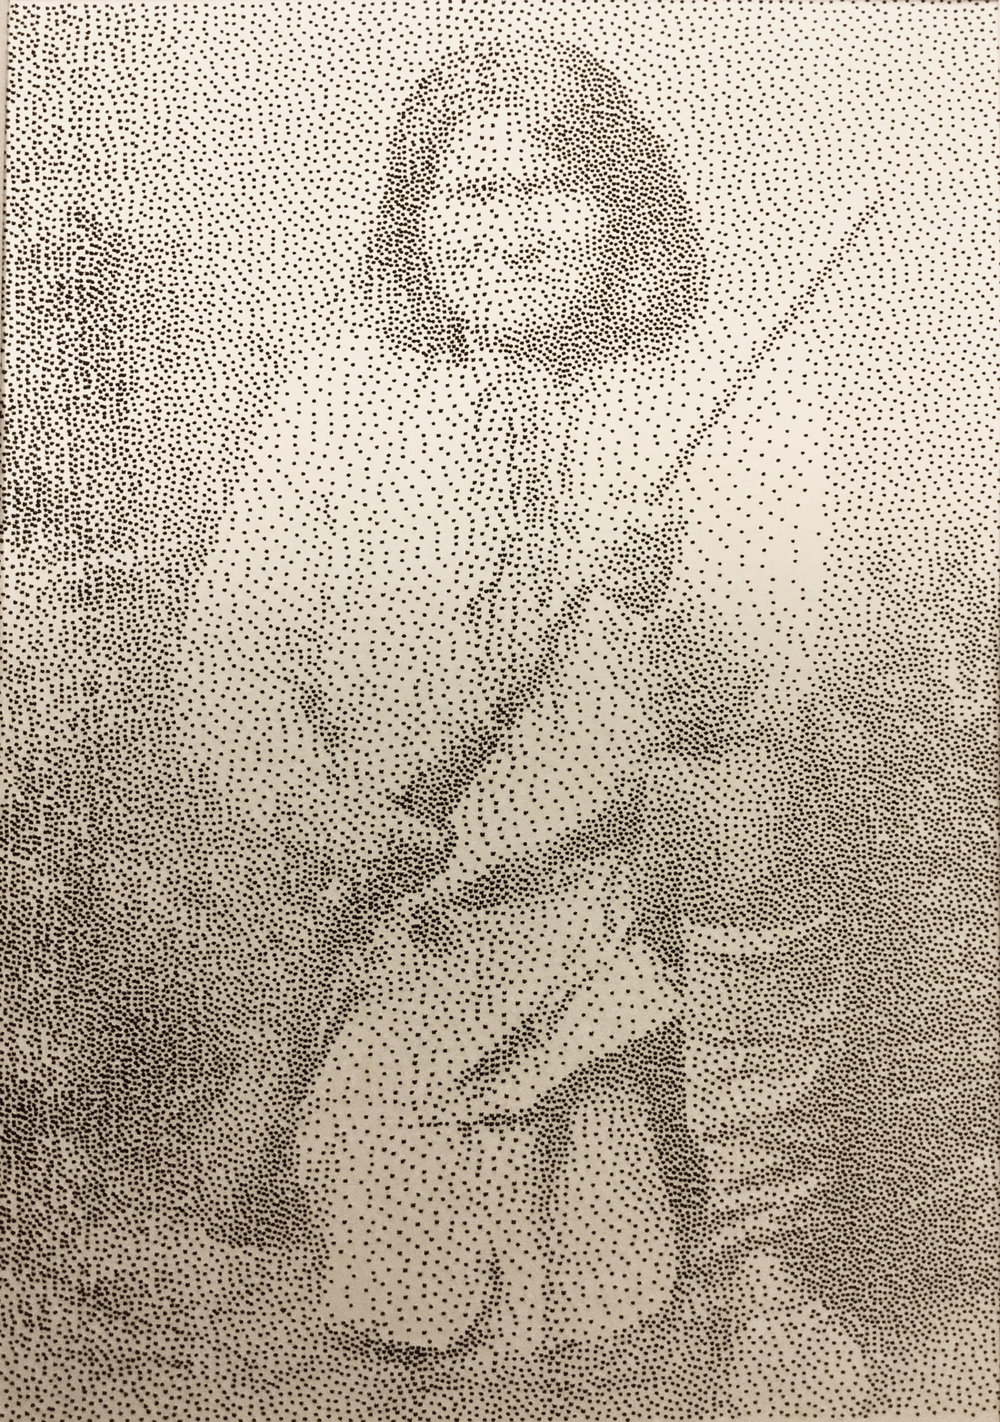 """""""Geronimo"""" India ink stippling on fine art paper."""